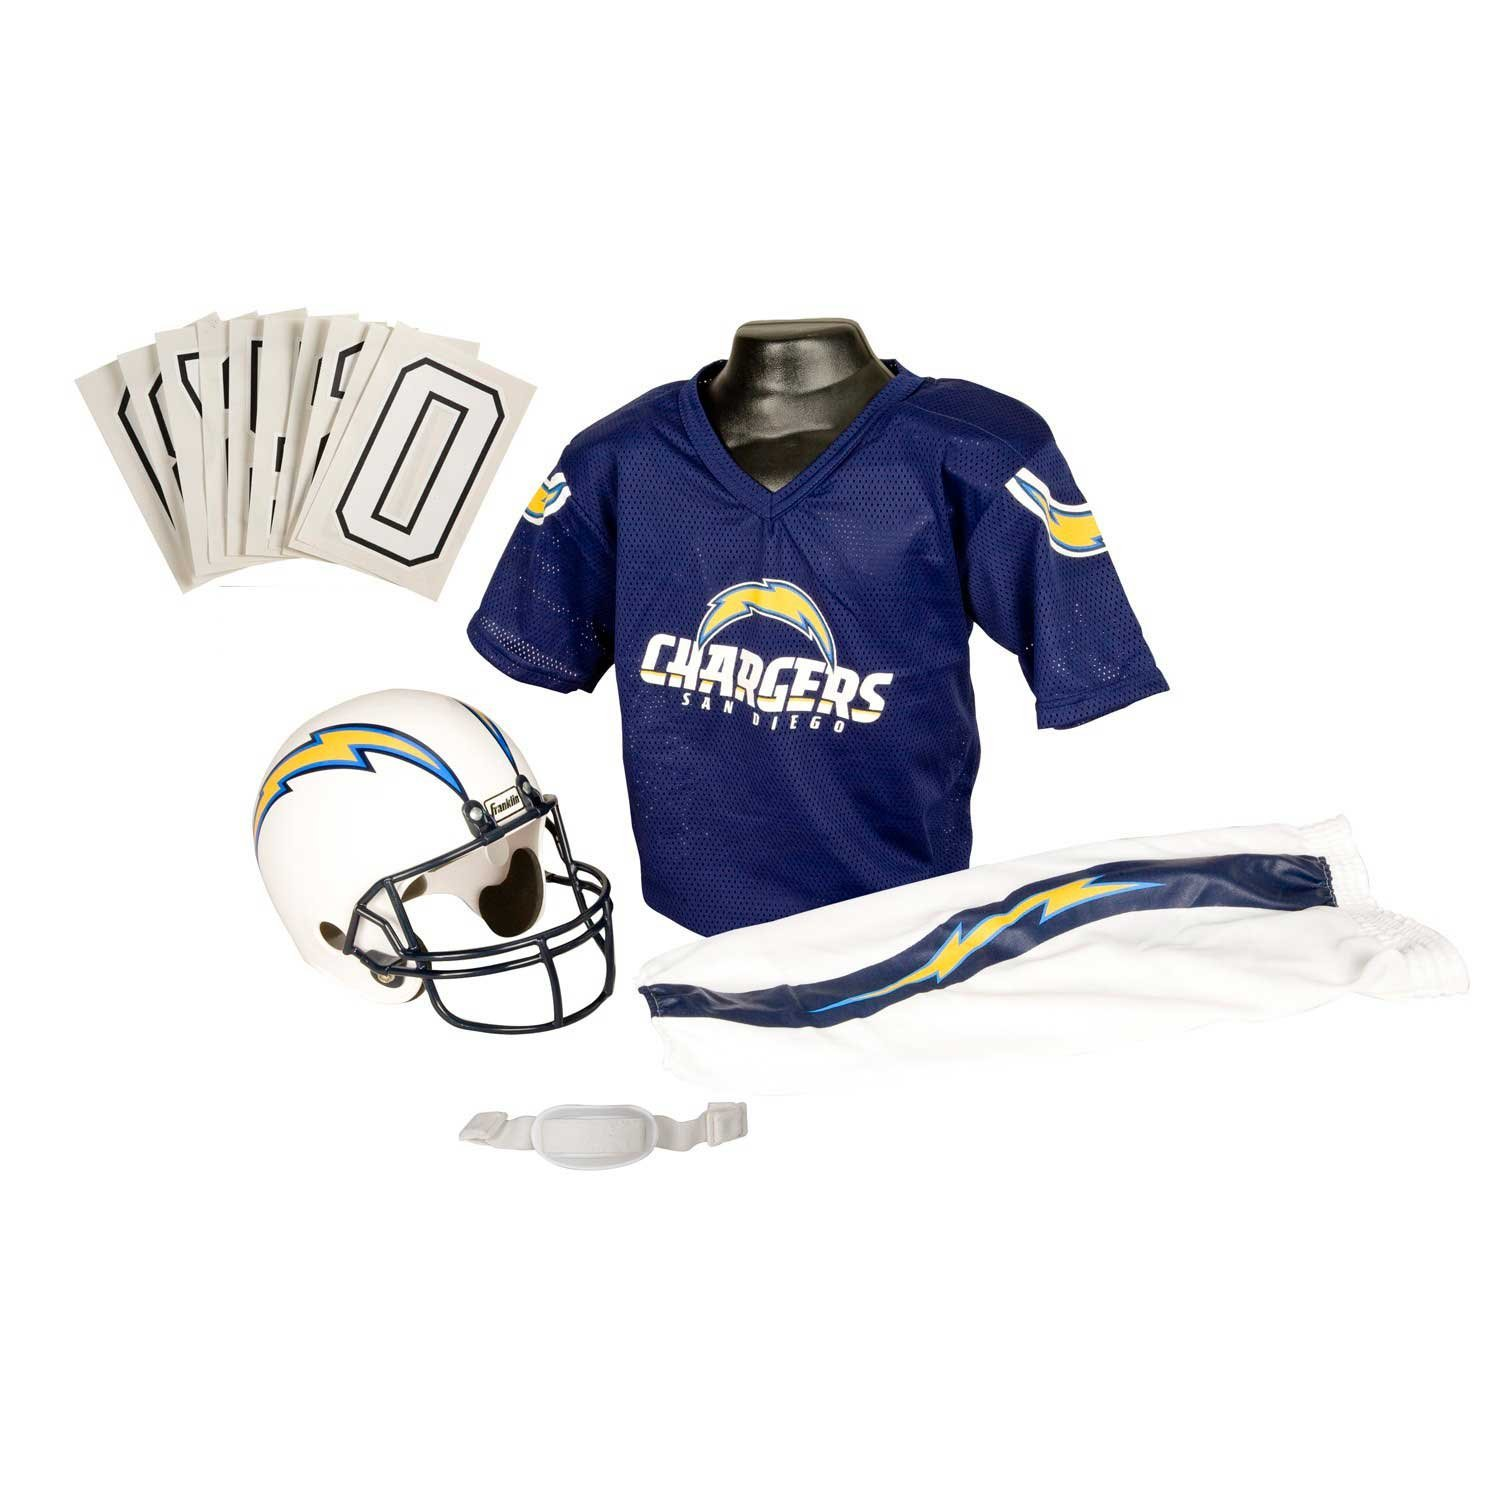 San Diego Chargers Costume: Best Costumes For Halloween